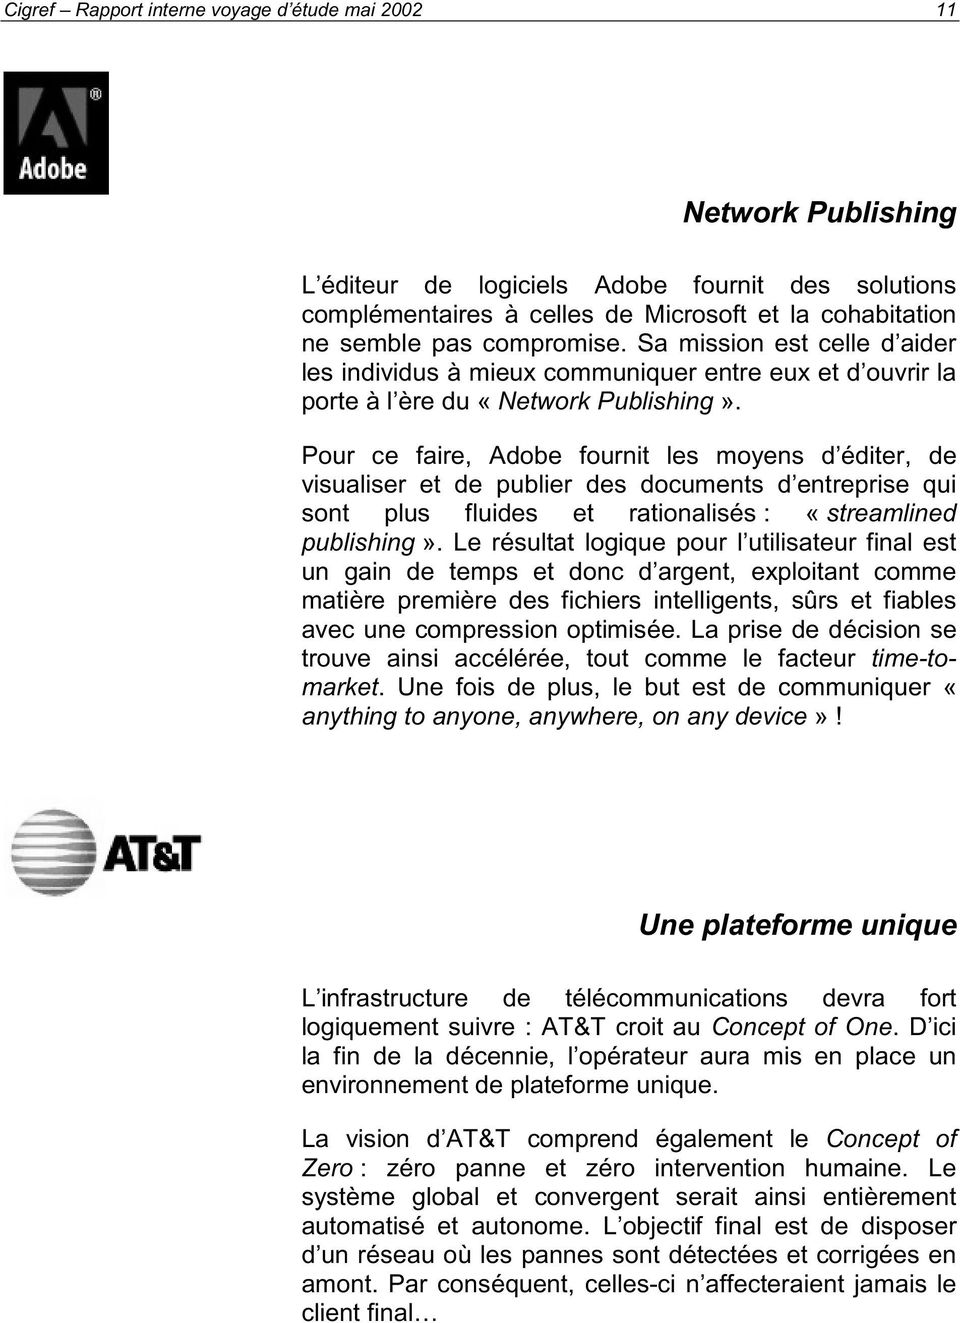 Pour ce faire, Adobe fournit les moyens d éditer, de visualiser et de publier des documents d entreprise qui sont plus fluides et rationalisés : «streamlined publishing».